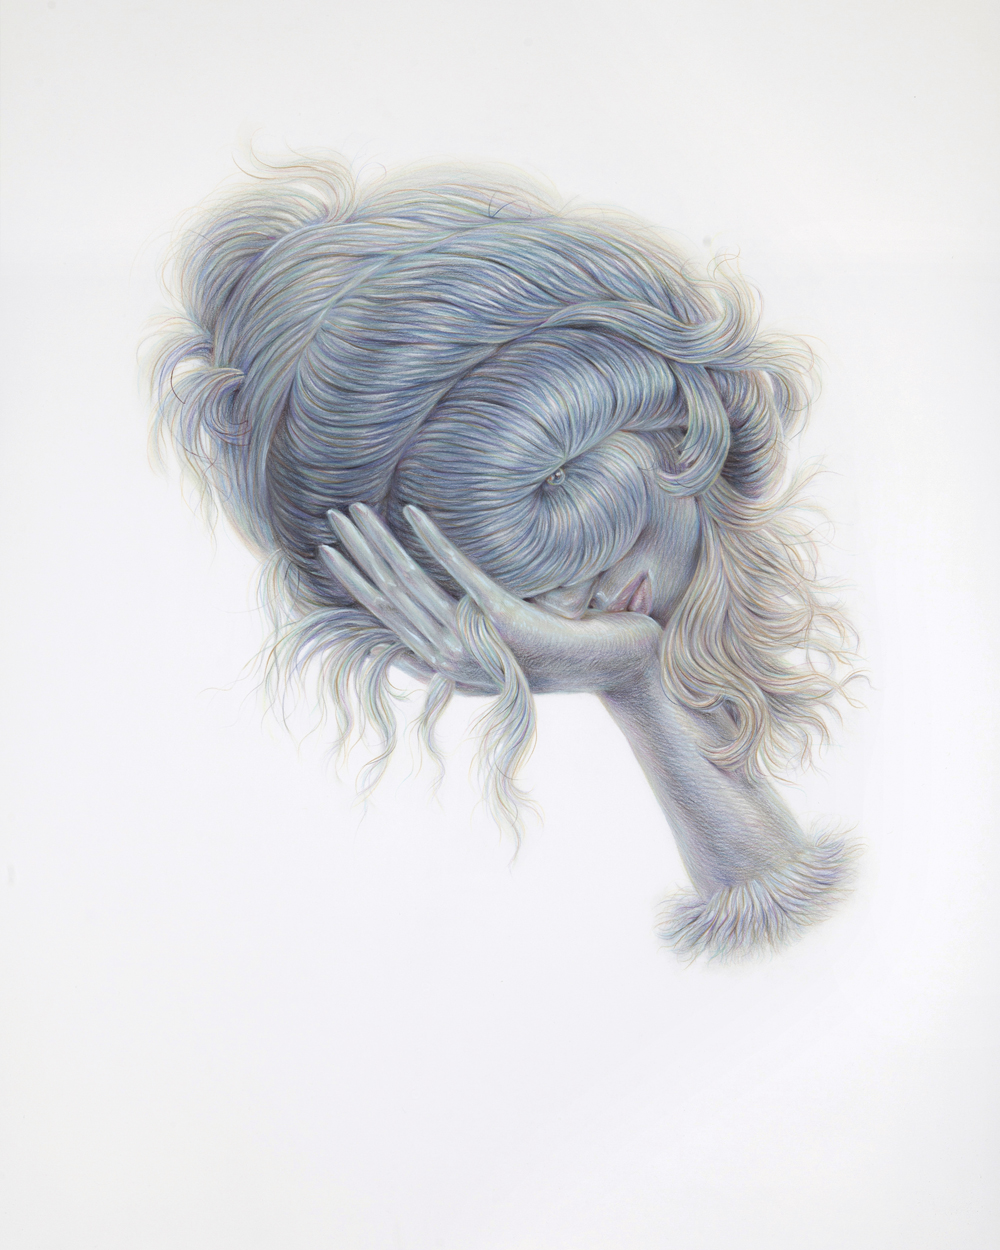 Conch Eye, 2017, colored pencil on paper, 44 x 36 inches